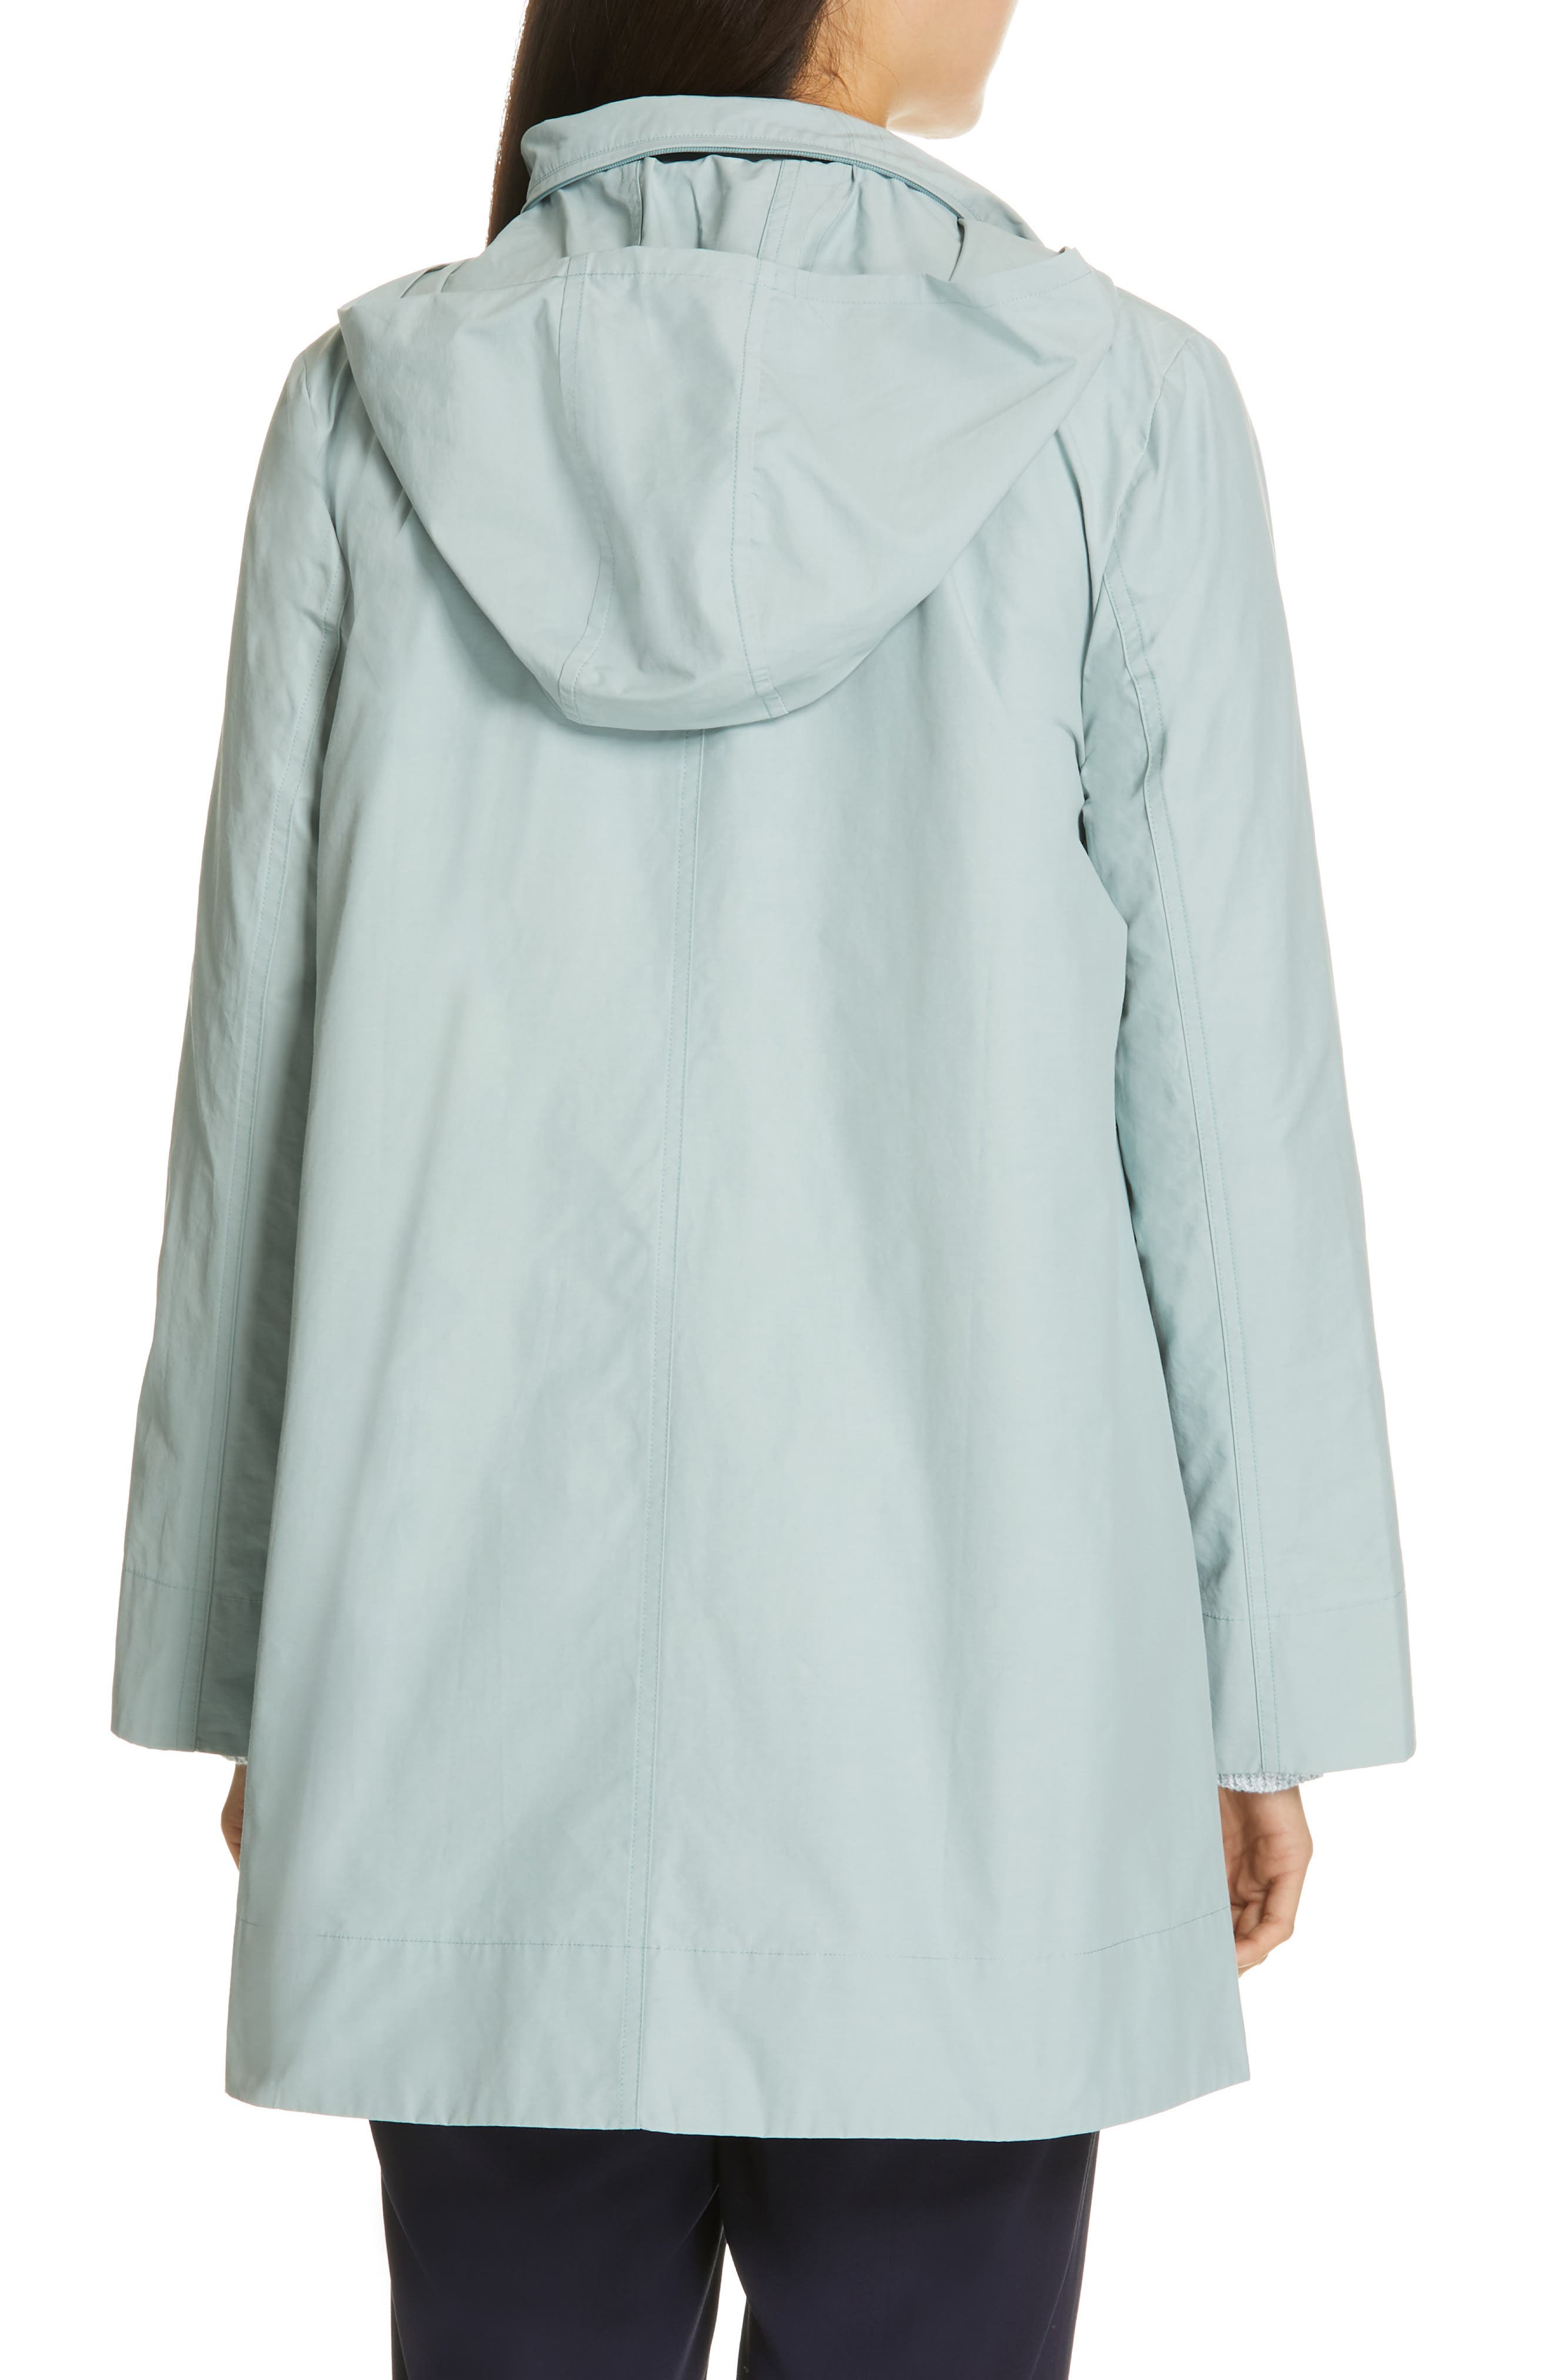 EILEEN FISHER,                             A-Line Jacket,                             Alternate thumbnail 2, color,                             BLUE IVY